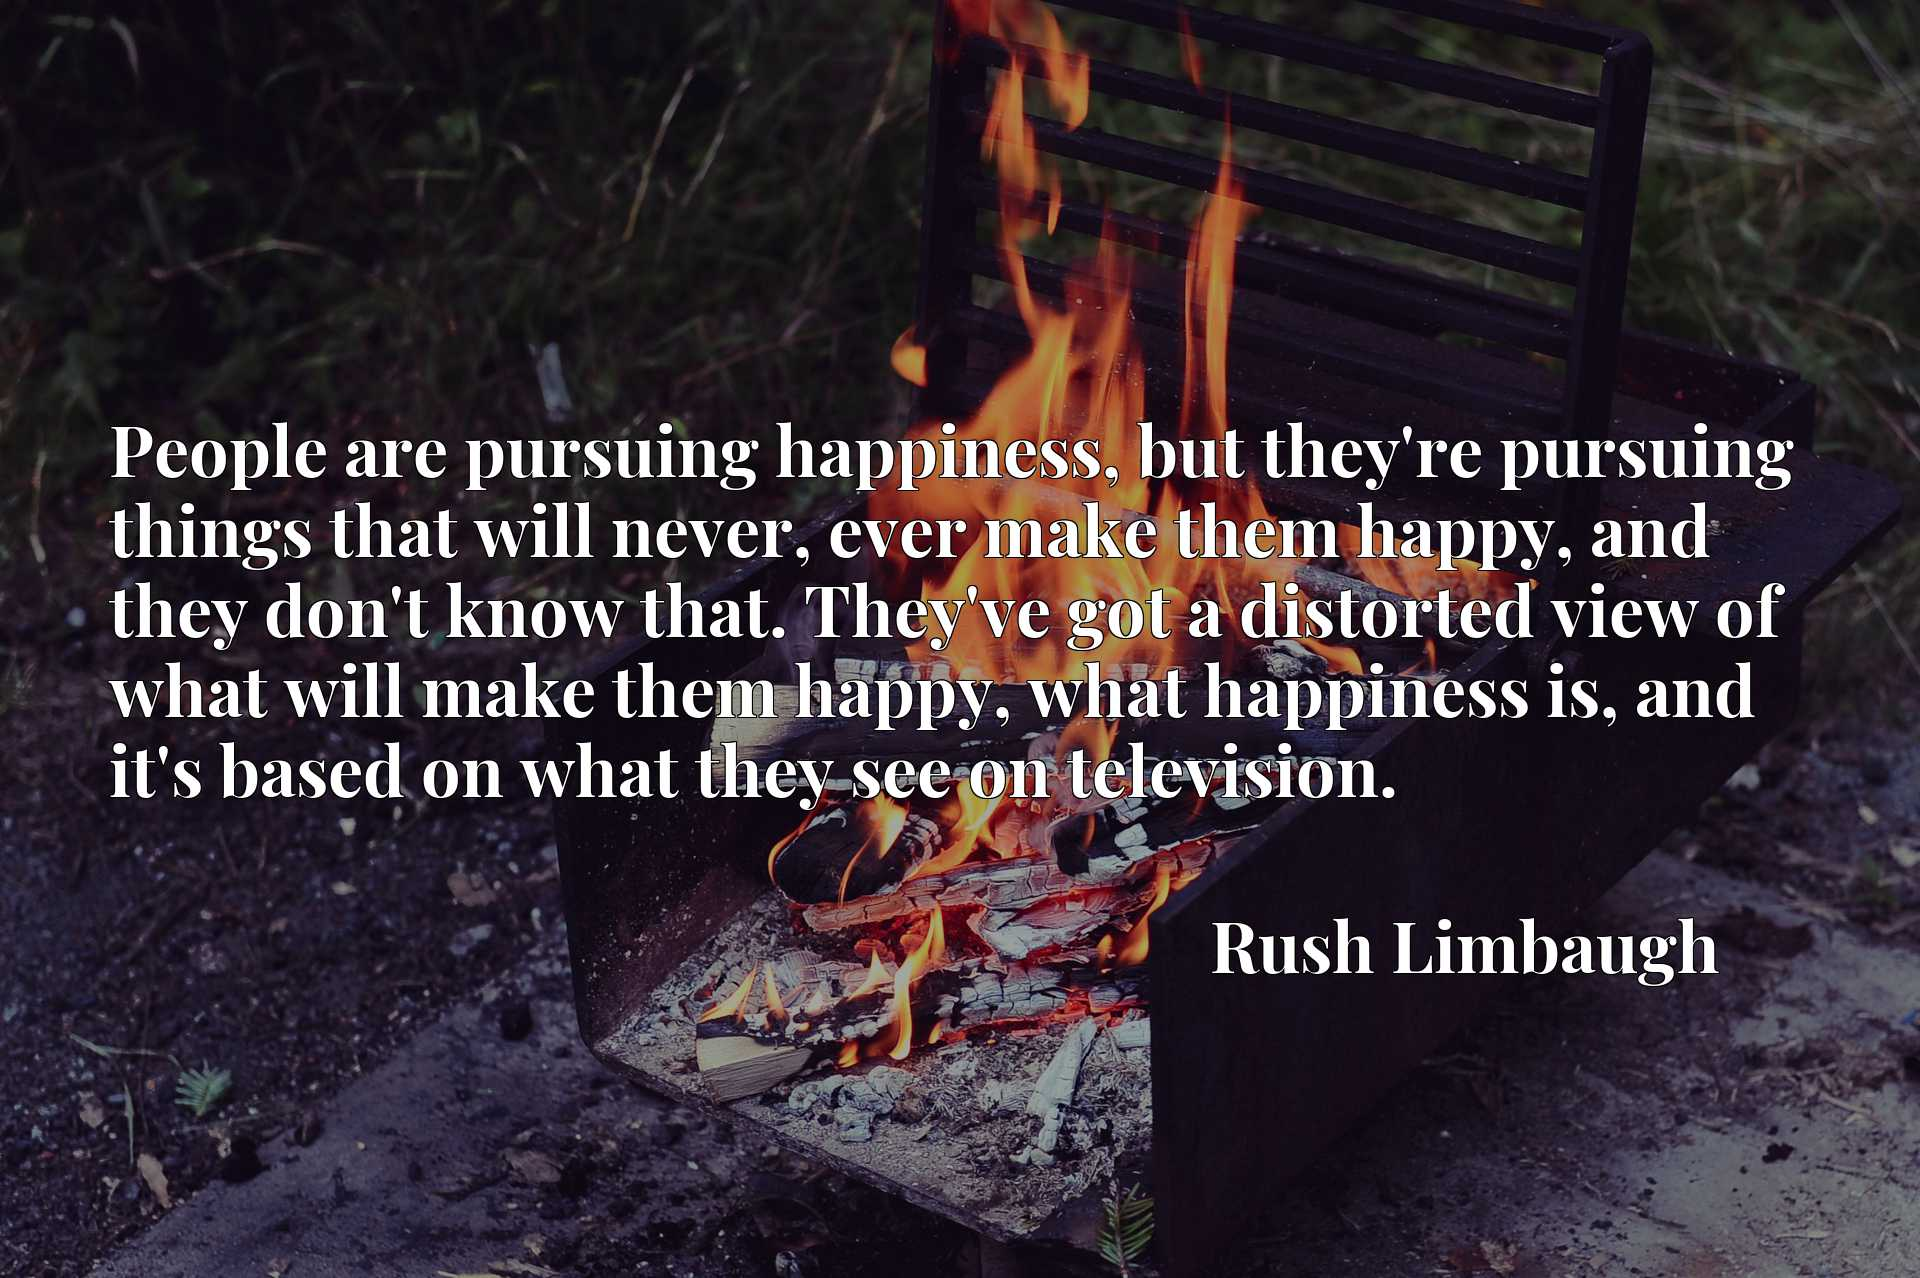 People are pursuing happiness, but they're pursuing things that will never, ever make them happy, and they don't know that. They've got a distorted view of what will make them happy, what happiness is, and it's based on what they see on television.